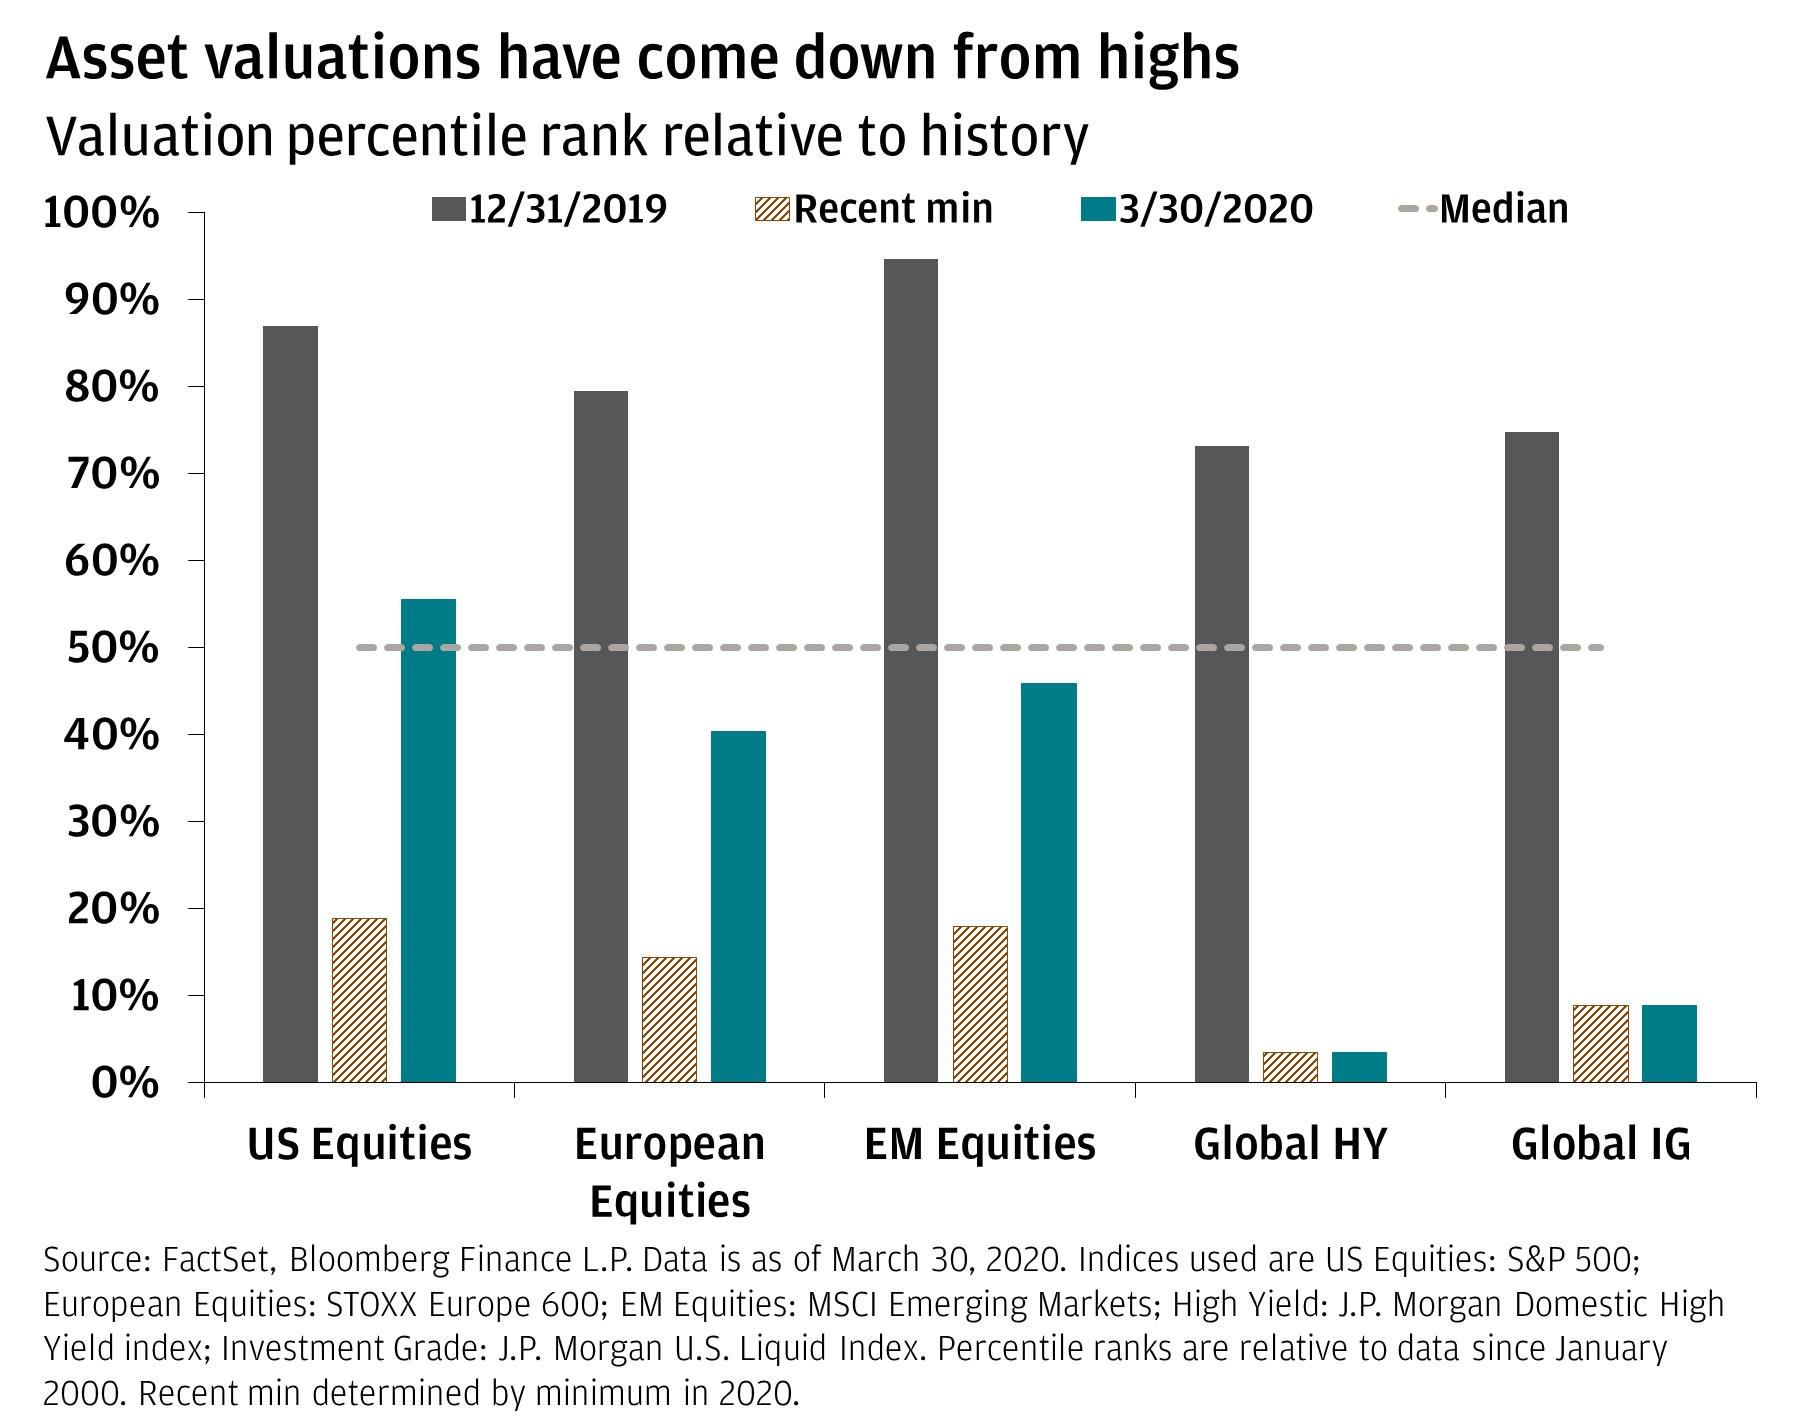 The bar chart shows the valuation percentile rank relative to history for 12/31/2019, 3/30/2020, and the recent minimum for U.S. equities, European equities, EM equities, Global HY, and Global IG. It shows that asset valuations are down from highs.